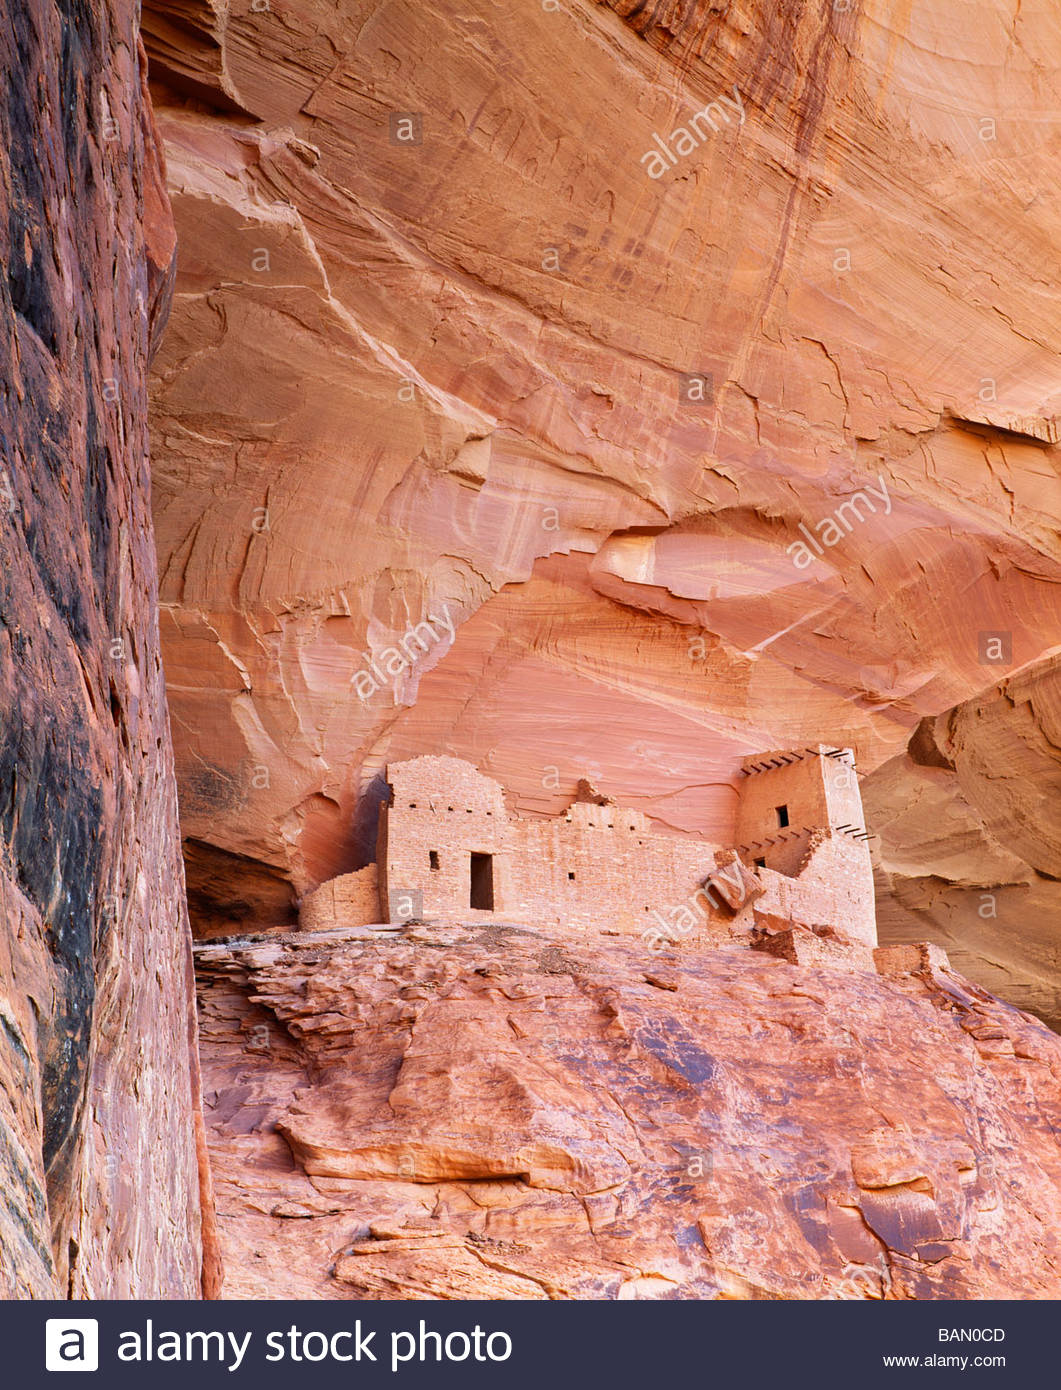 'Tower Ruin' at 'Mummy Cave' 'Canyon del Muerto' Anasazi culture site [Canyon de Chelly - Stock Image